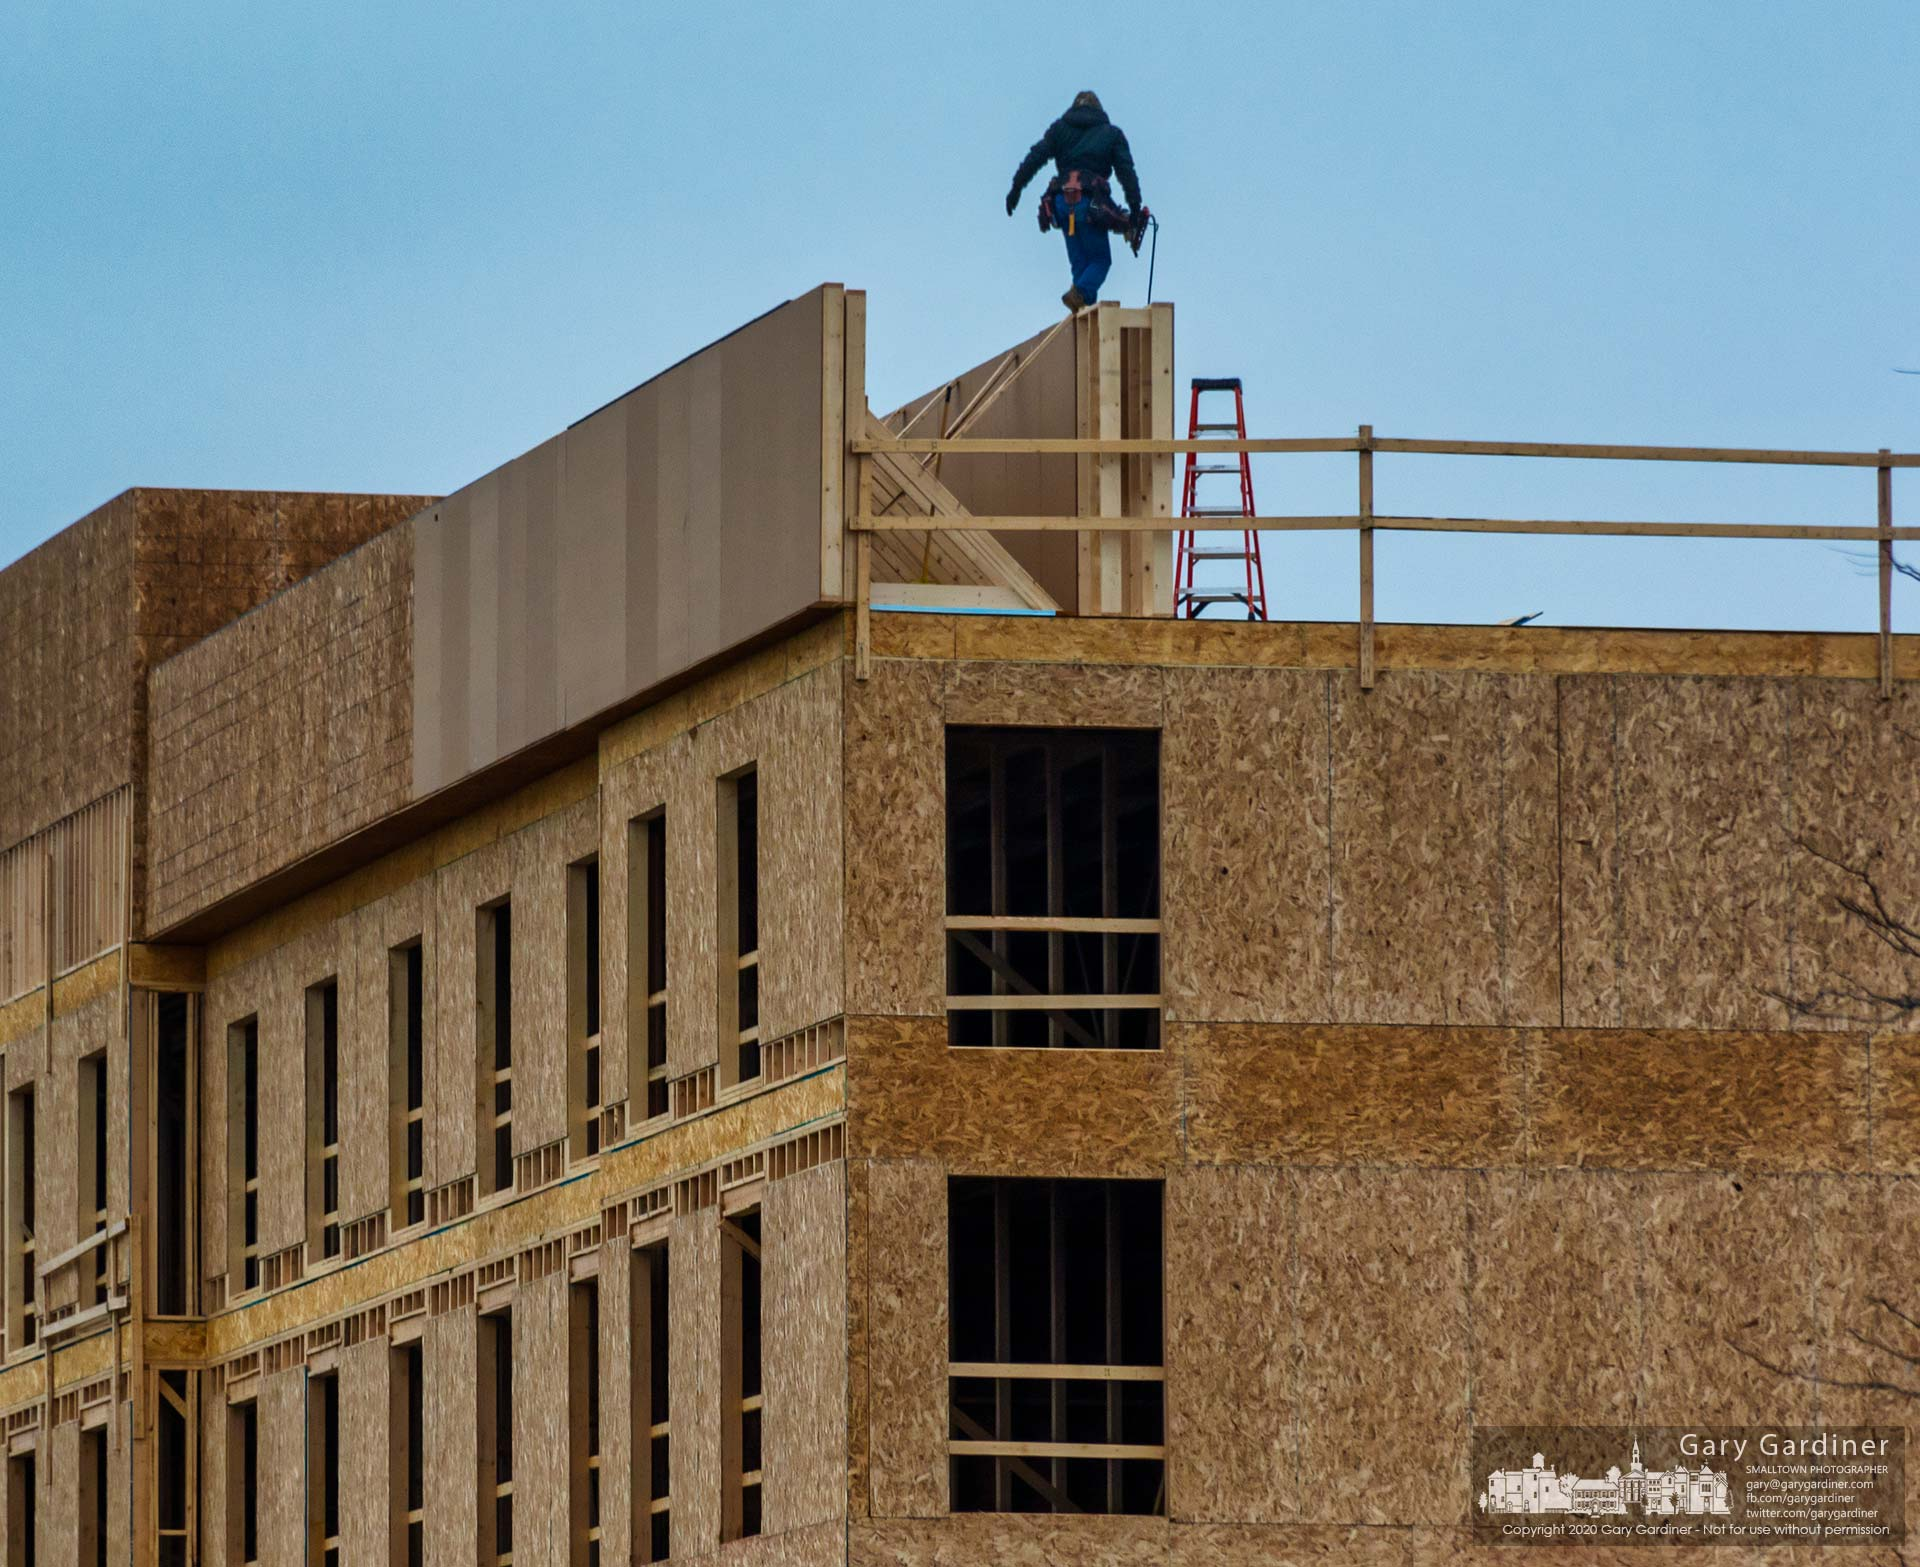 A carpenter steadies himself as he walks across a section of the parapet atop the new Home 2 Suites hotel being built adjacent to Costco near Polaris. My Final Photo for Jan. 27, 2019.